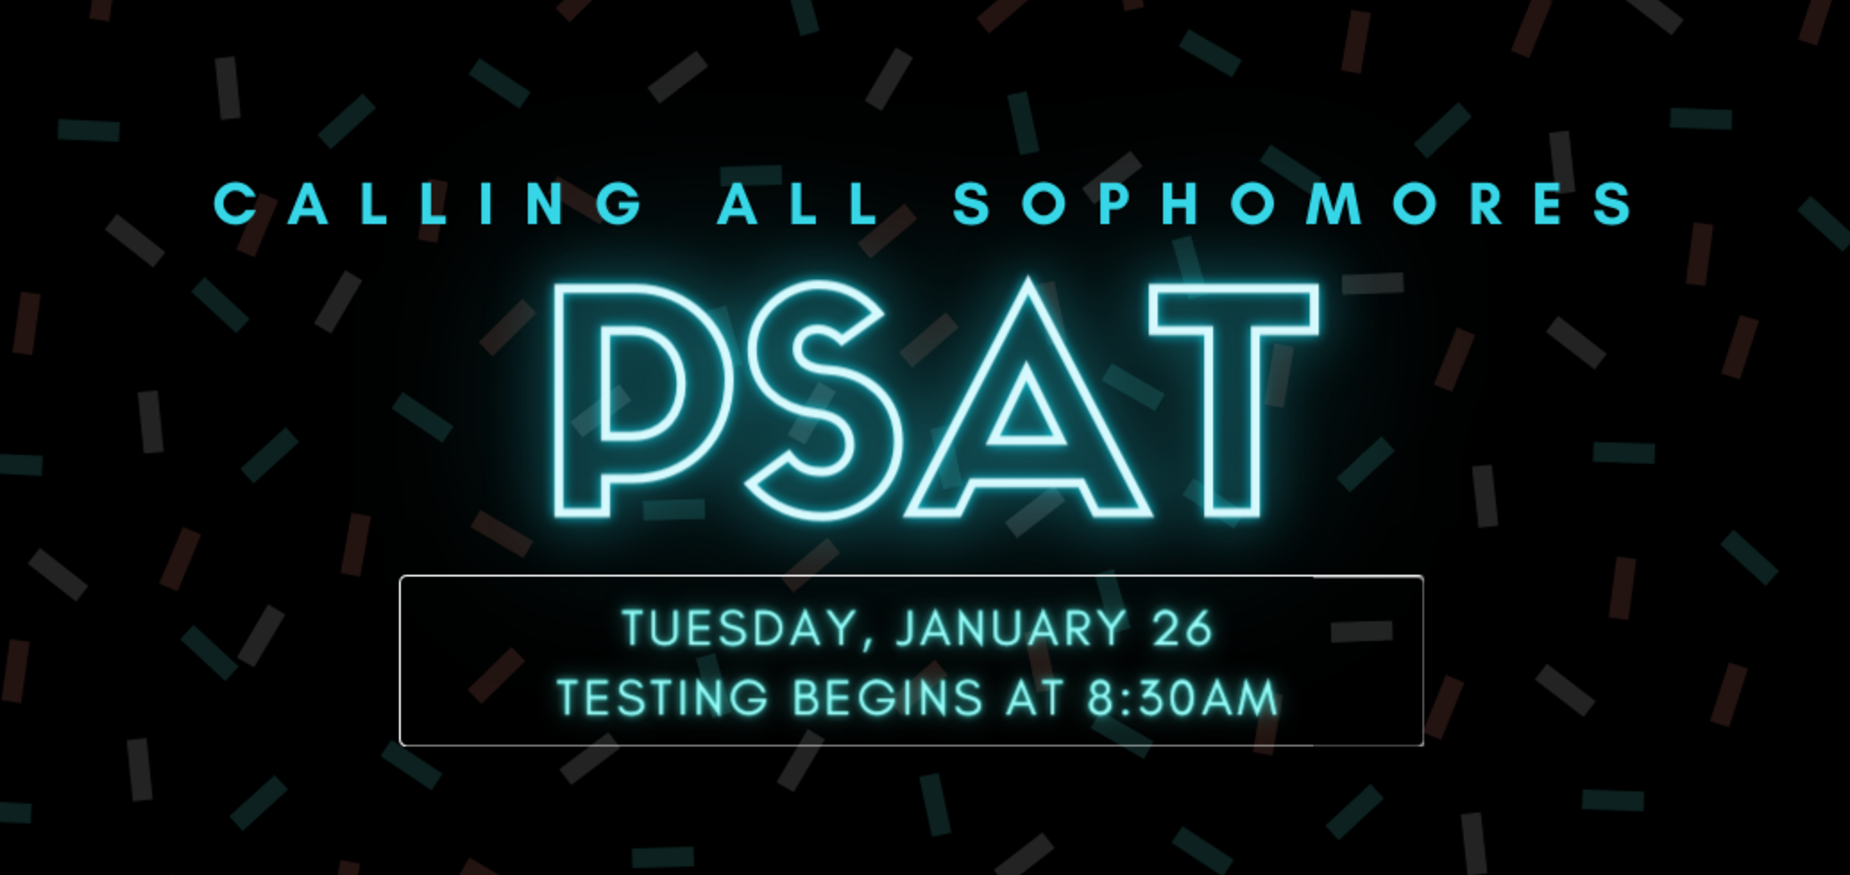 PSAT will be held on Tuesday January 26. Testing begins at 8:30 am